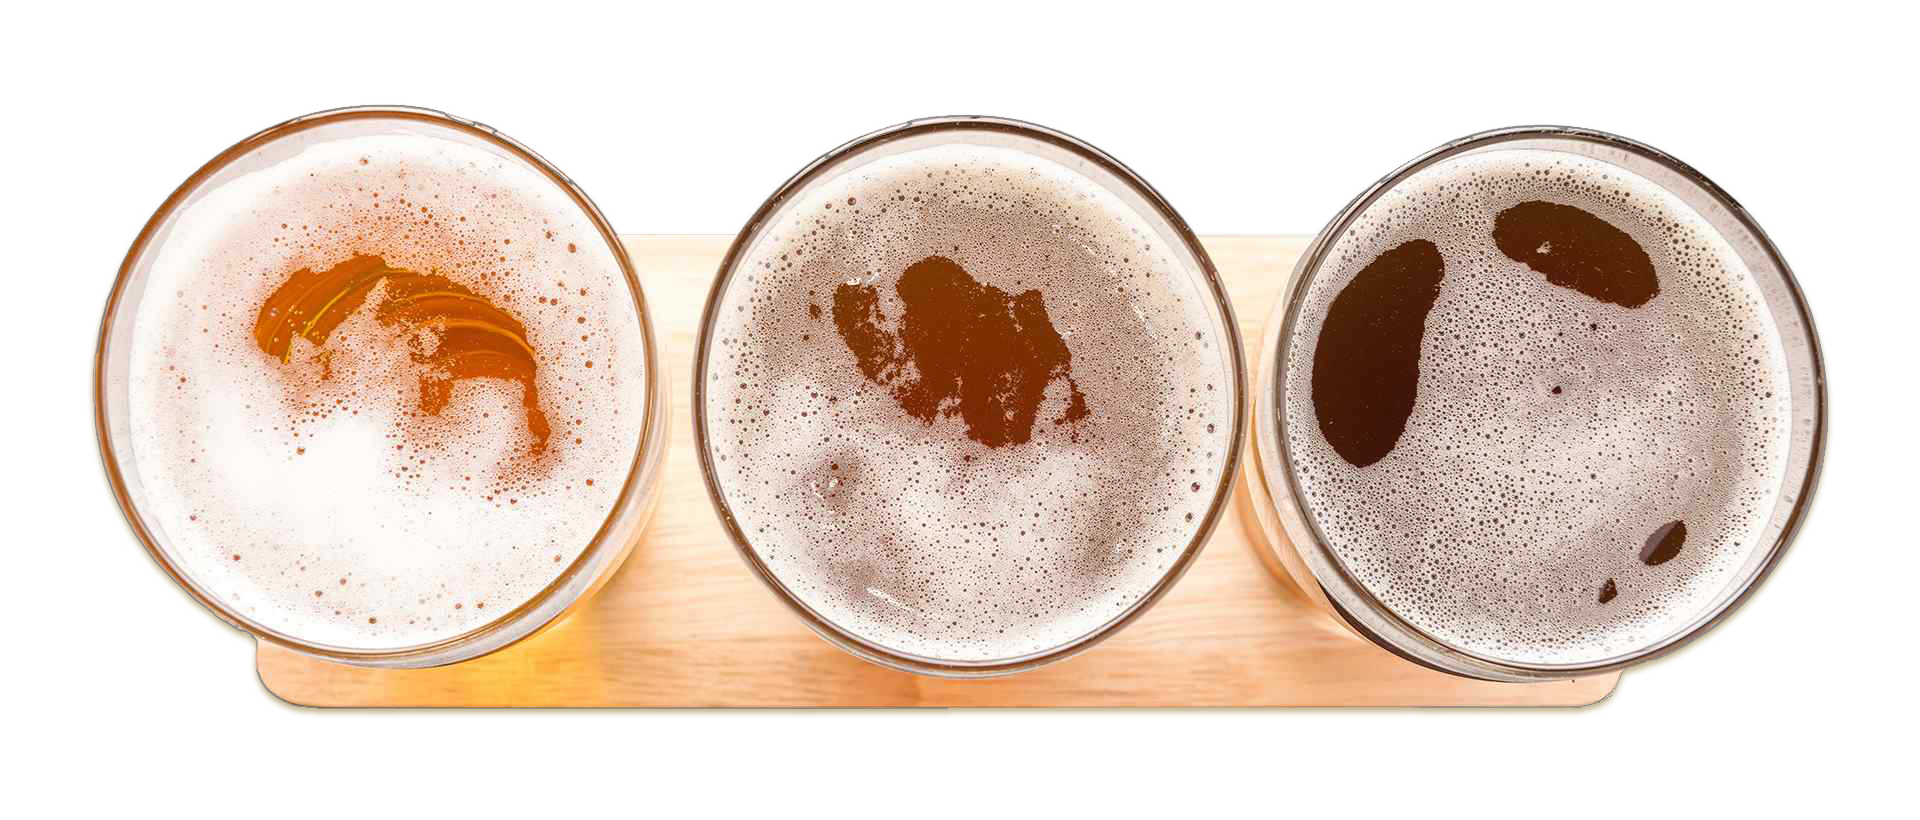 https://agarsbrewery.co.za/wp-content/uploads/2021/04/Beer-on-white-background.jpg